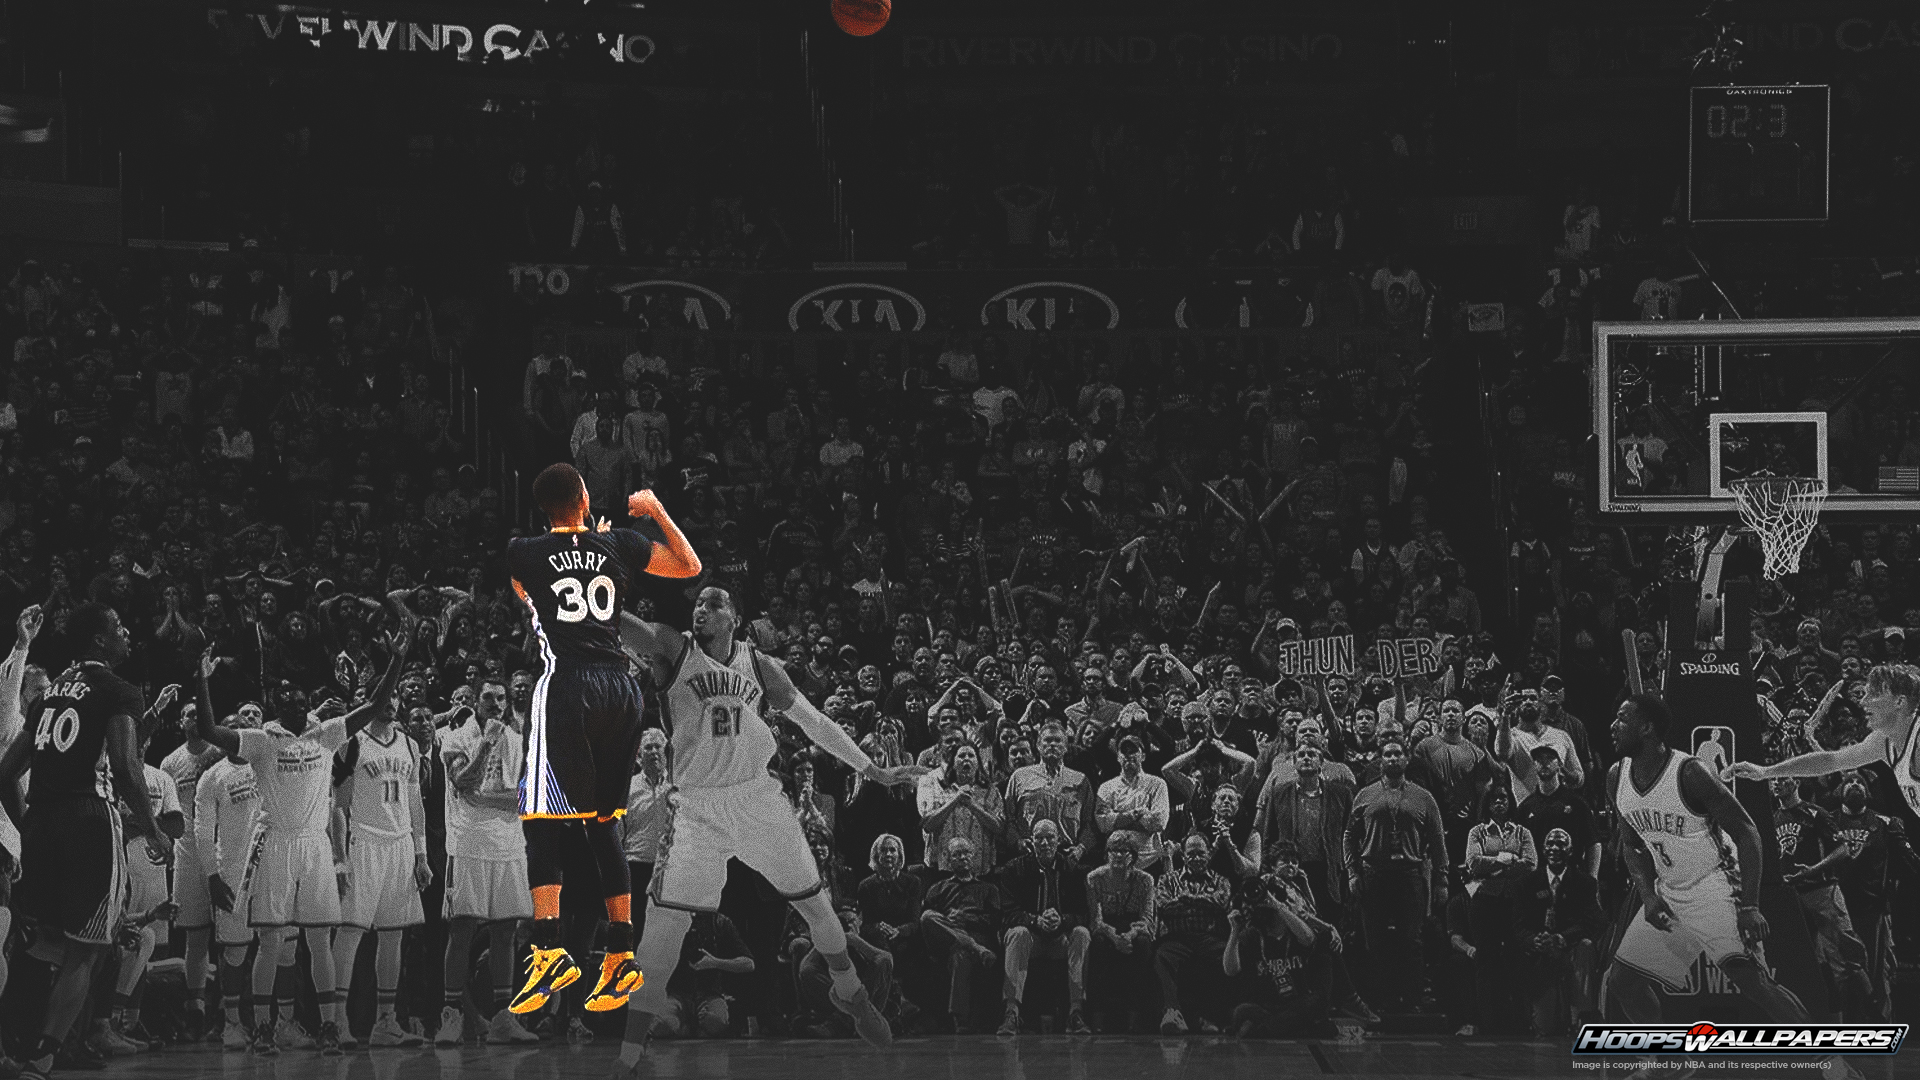 Cool Nba Wallpapers For Iphone images in Collection Page